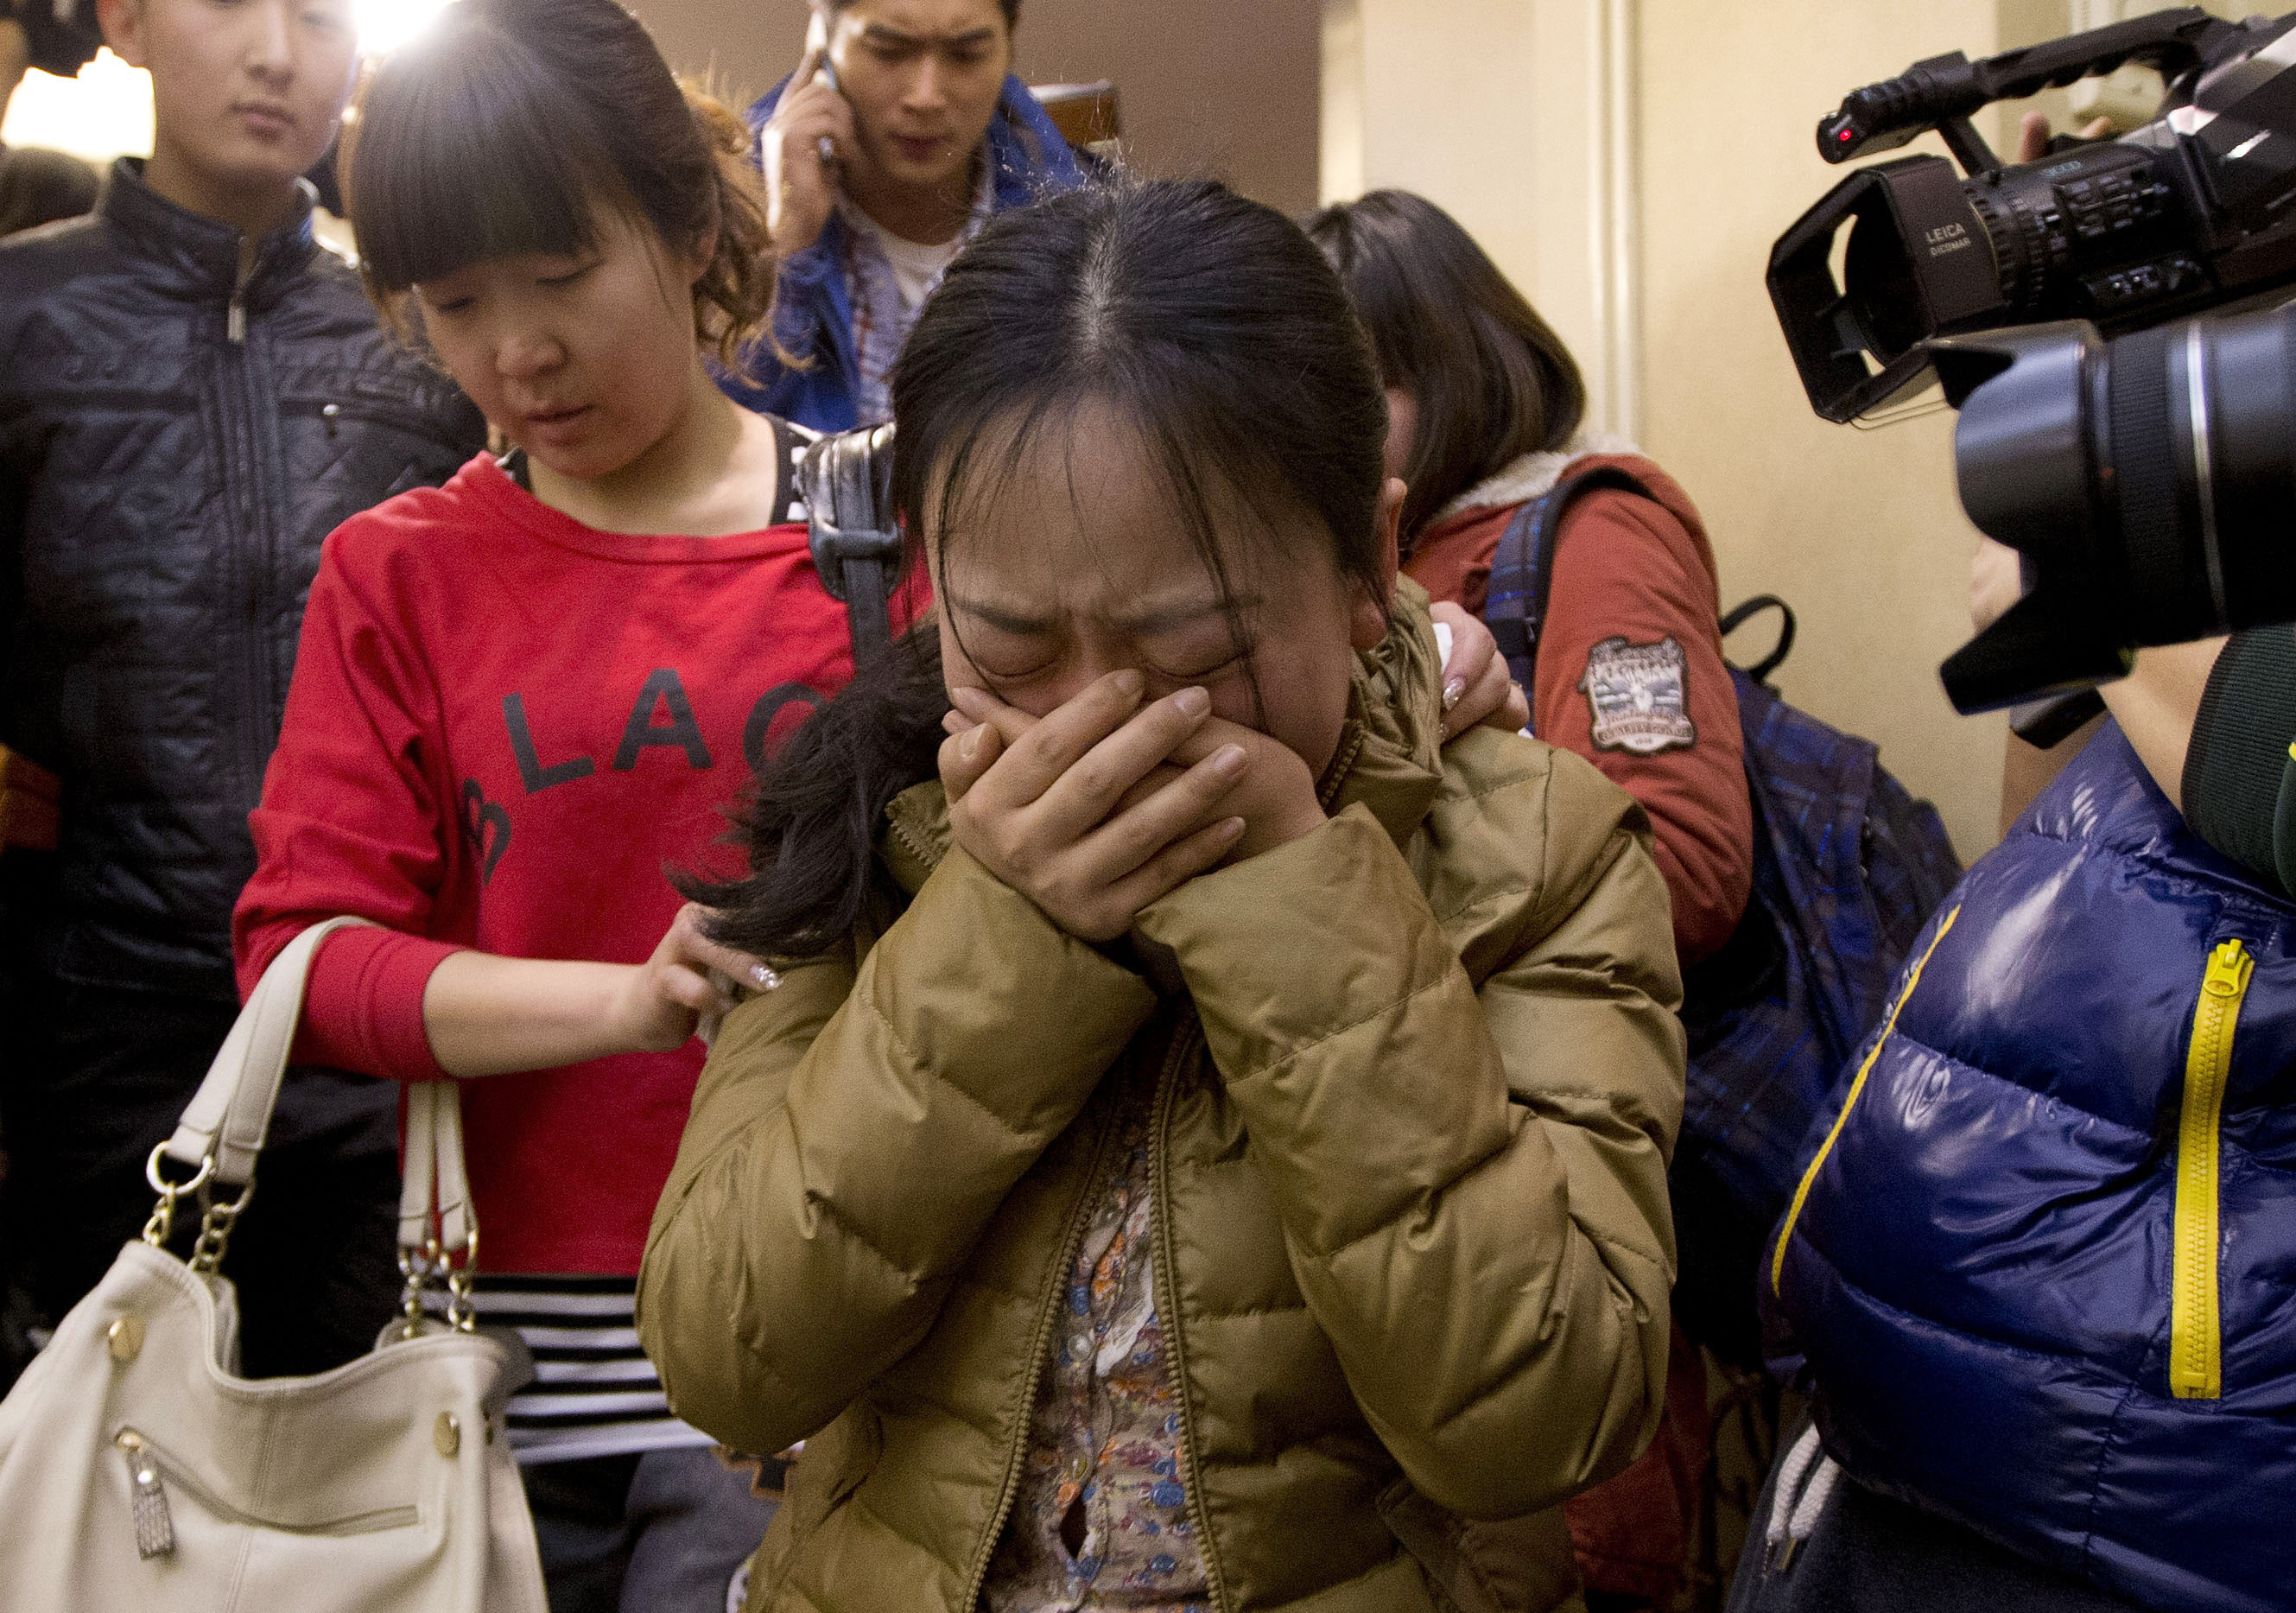 A relative of passengers aboard a missing Malaysia Airlines flight is escorted by a woman from a Beijing hotel room for loved ones of those aboard the airplane Sunday.